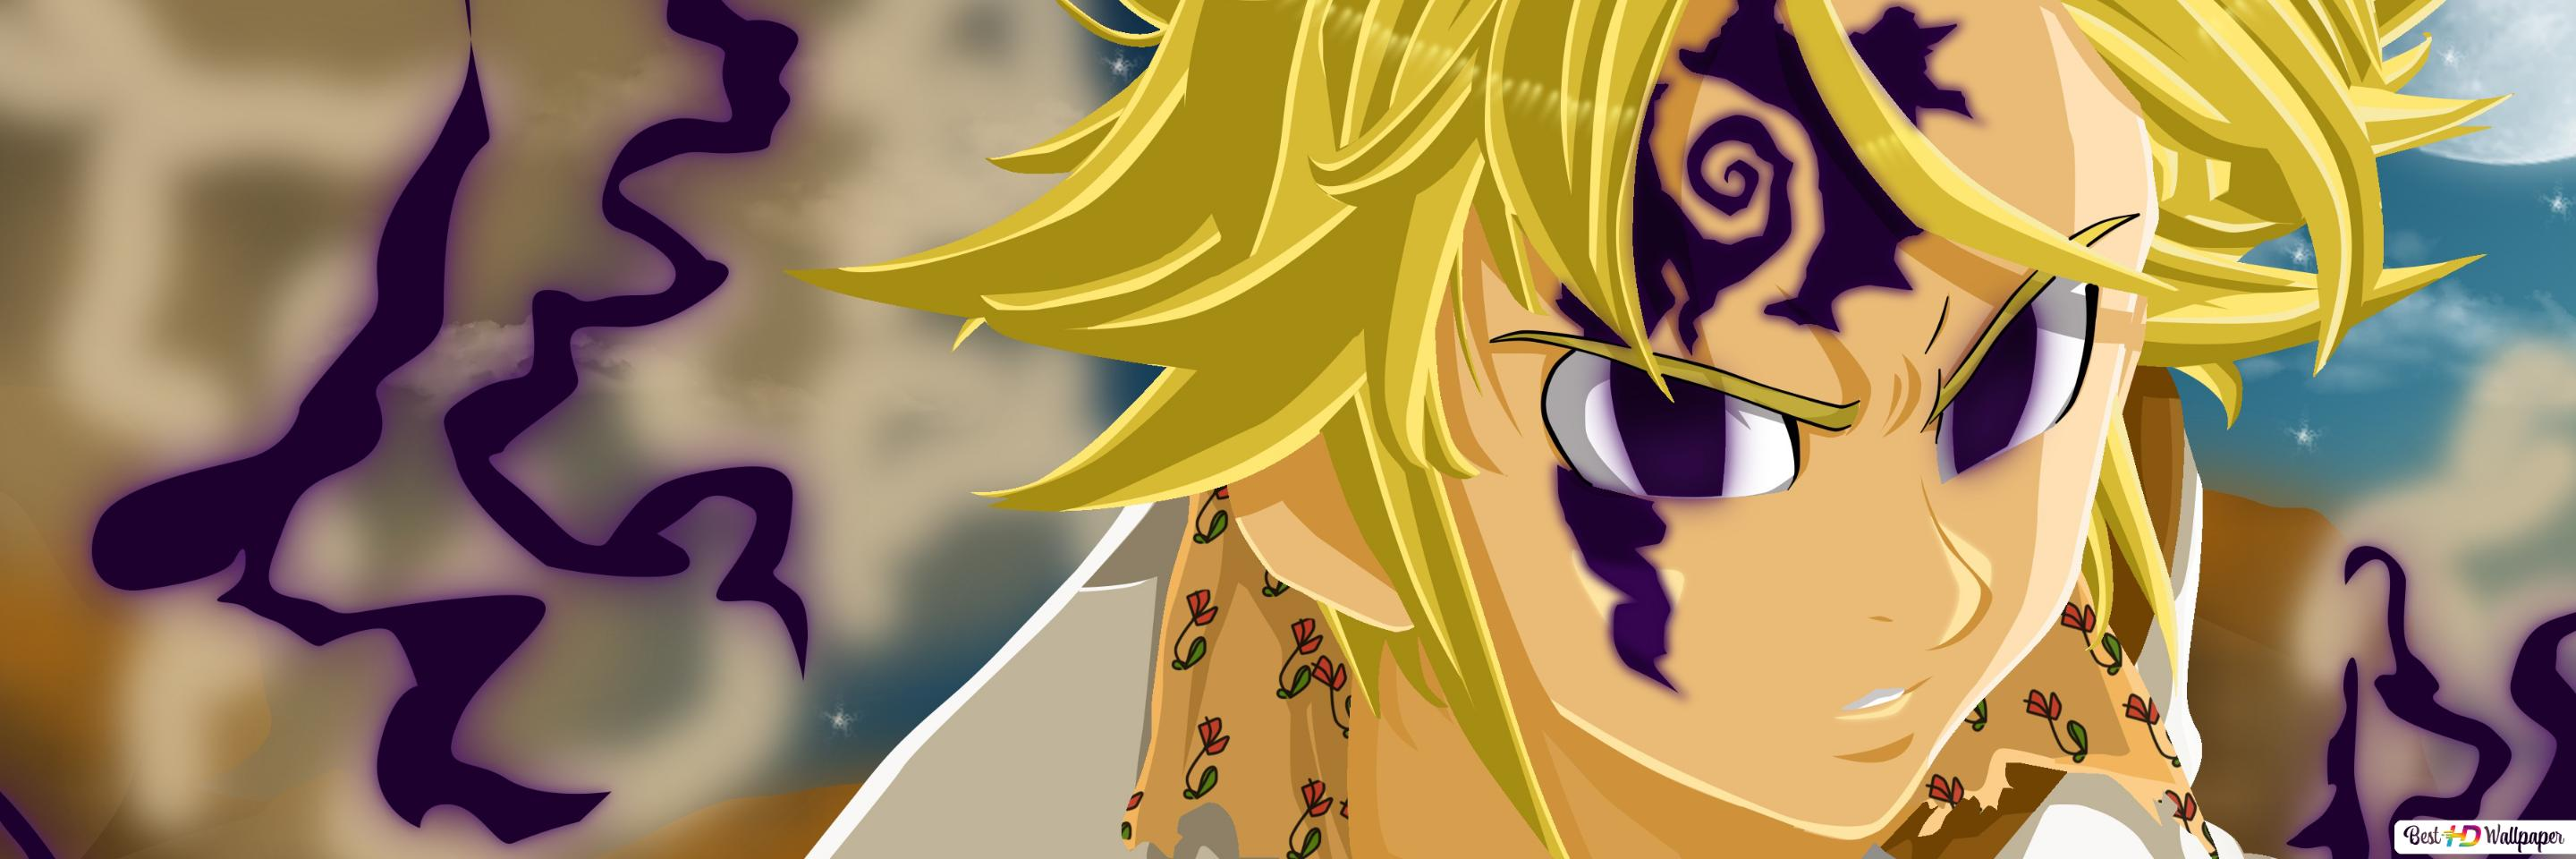 Wallpaper Meliodas Demon Mode: Meliodas Demon Mode HD Wallpaper